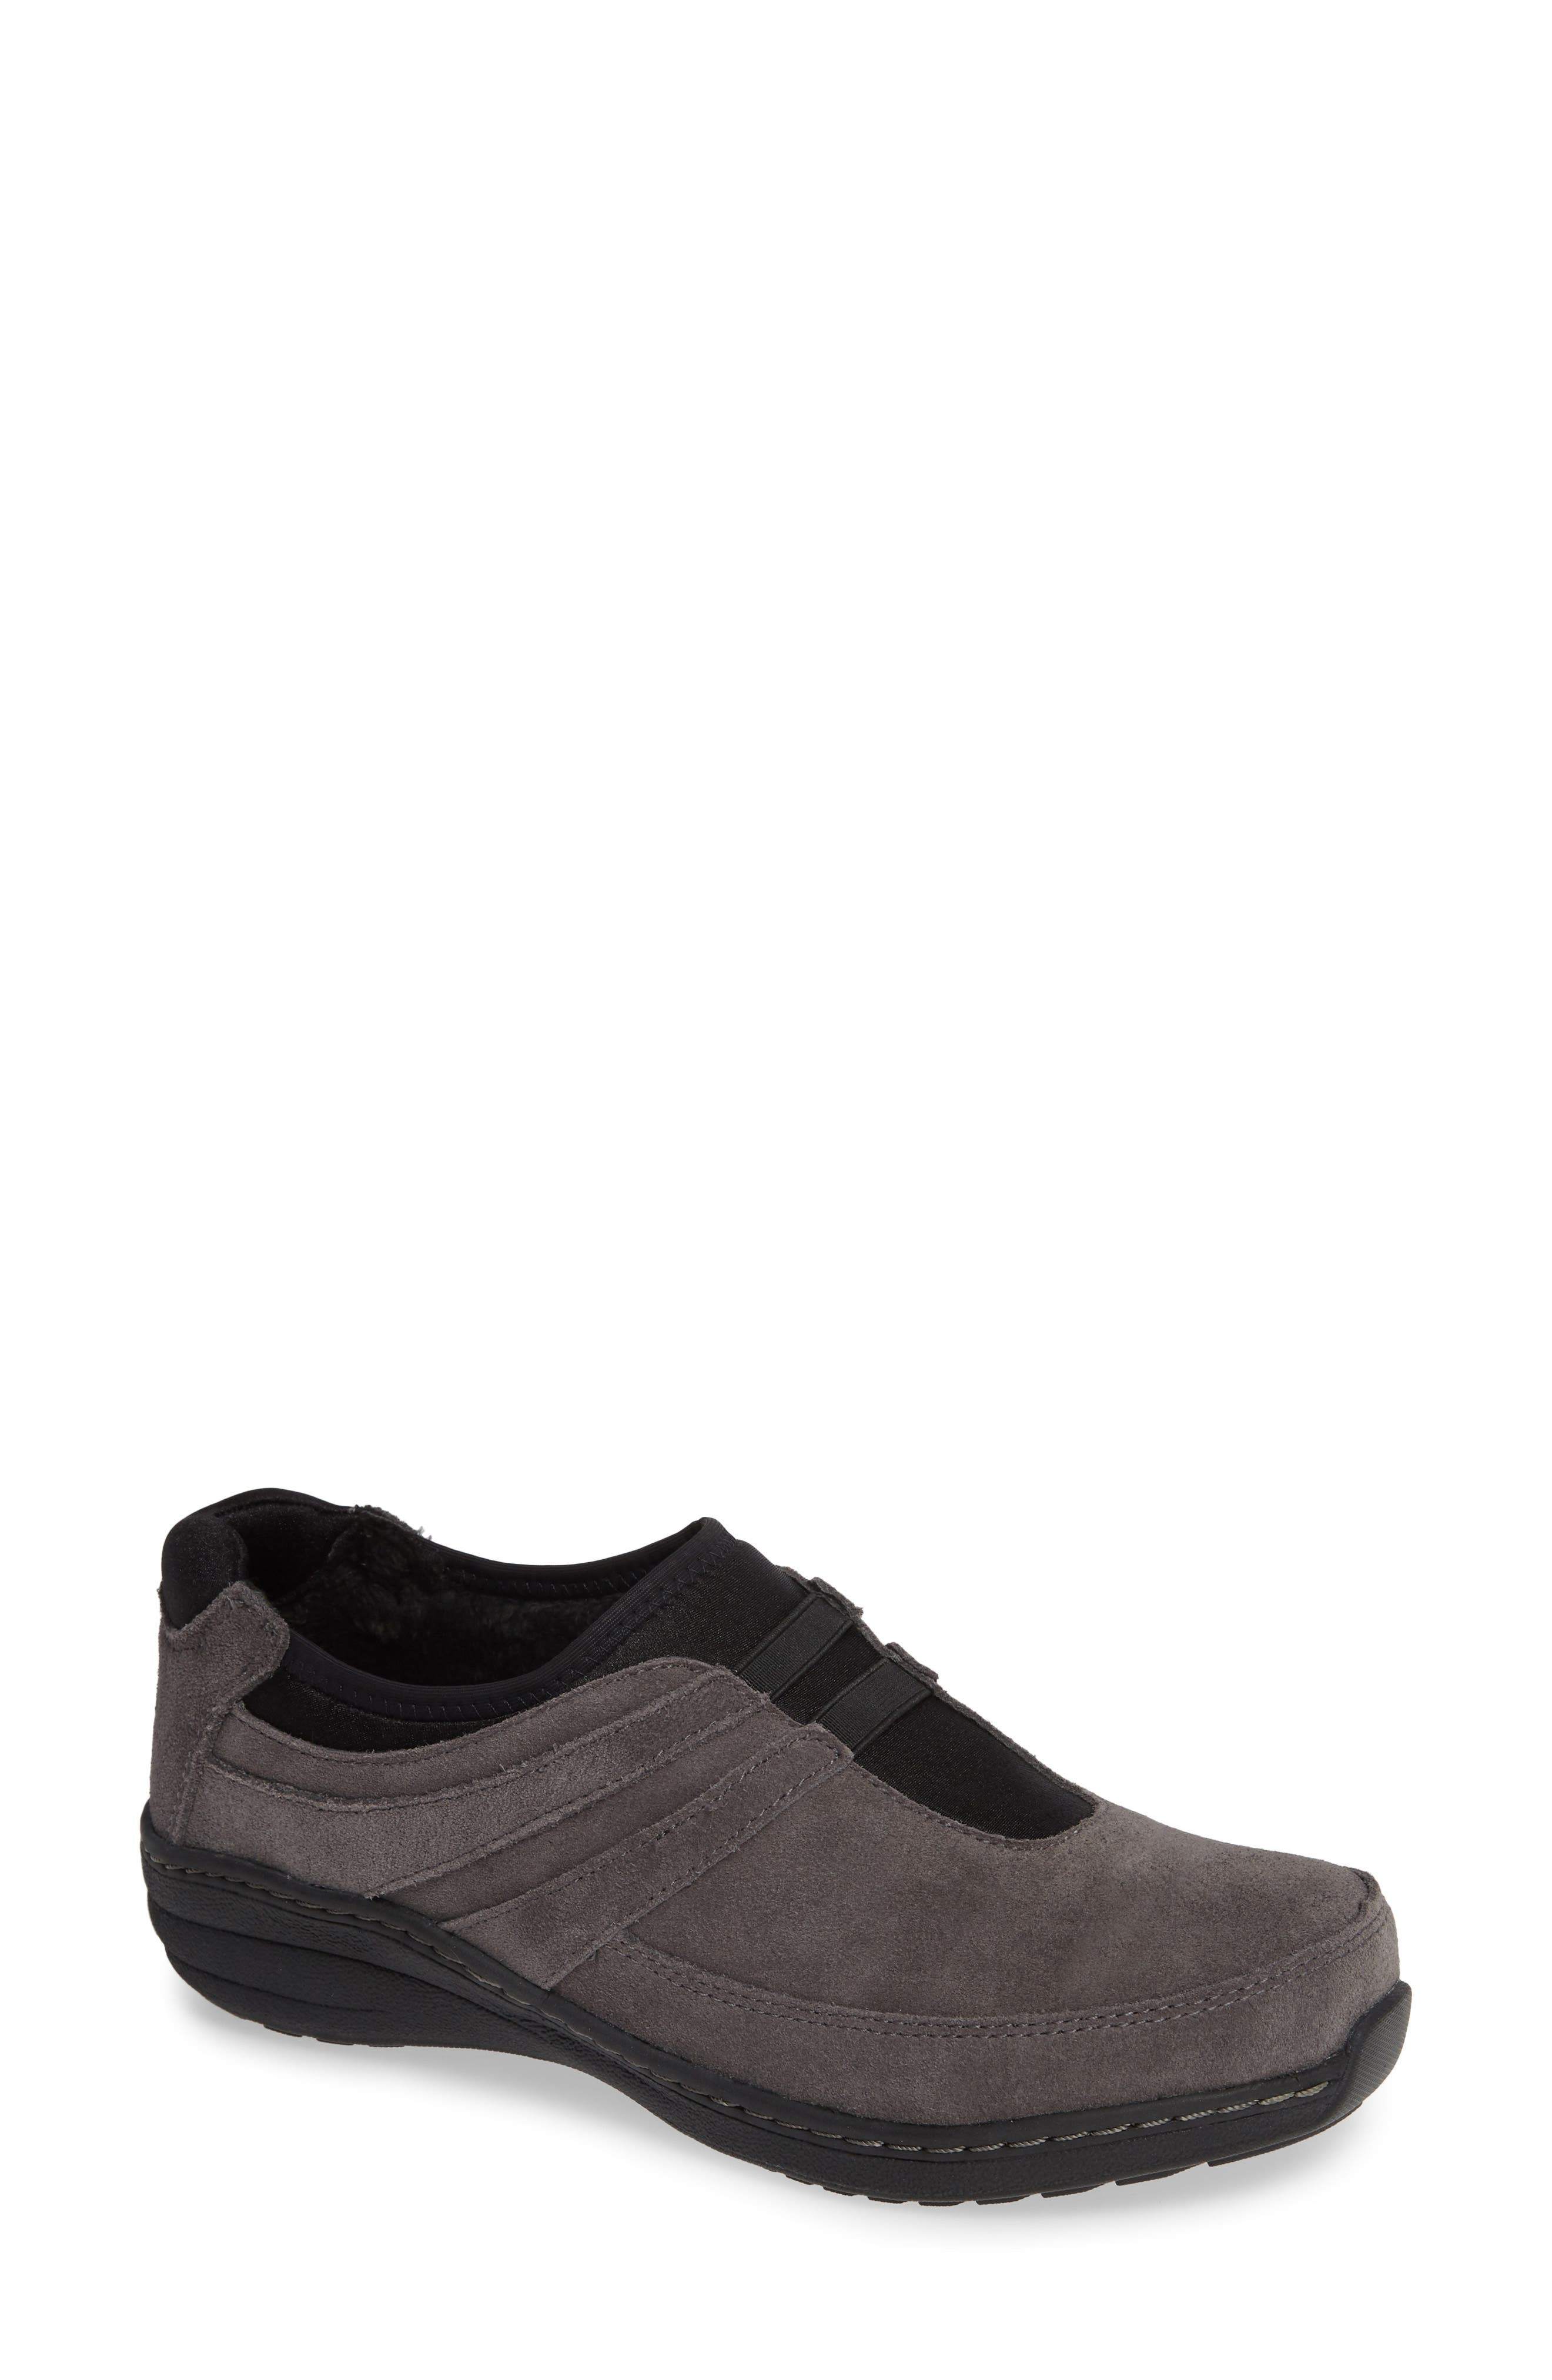 Berries Slip-On Sneaker,                             Main thumbnail 1, color,                             CHARCOAL FABRIC